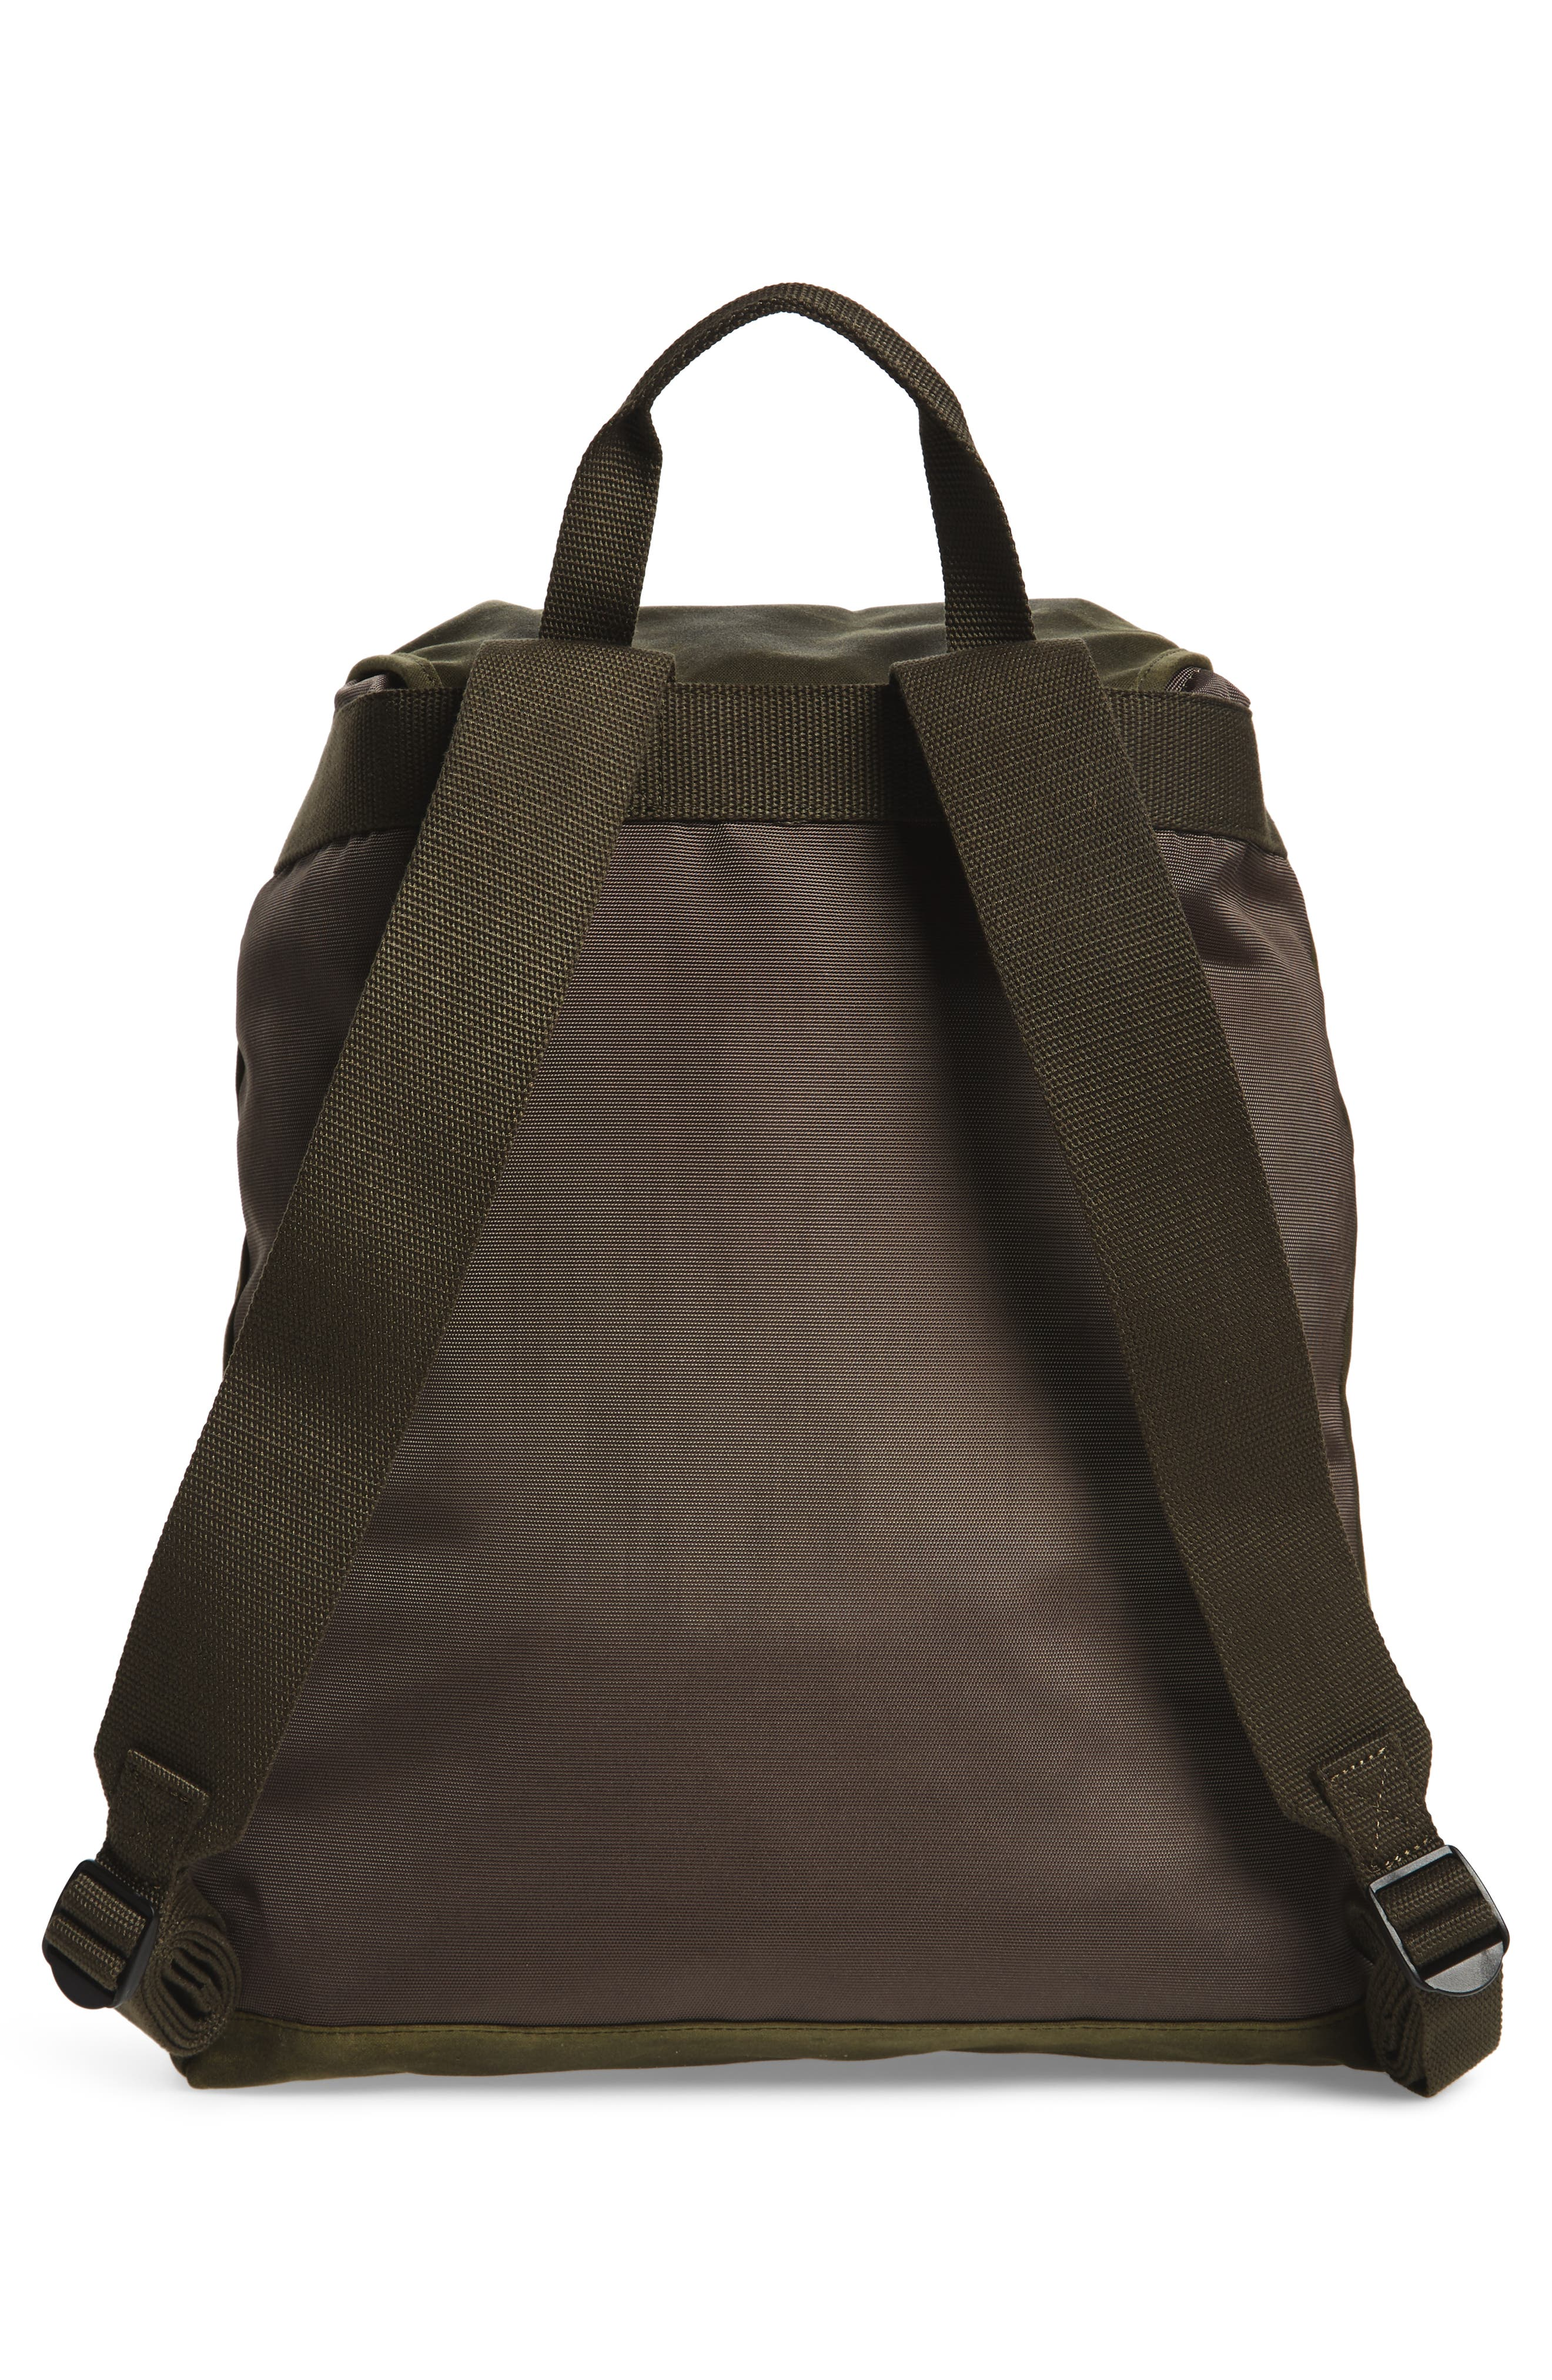 Archive Backpack,                             Alternate thumbnail 3, color,                             ARCHIVE OLIVE